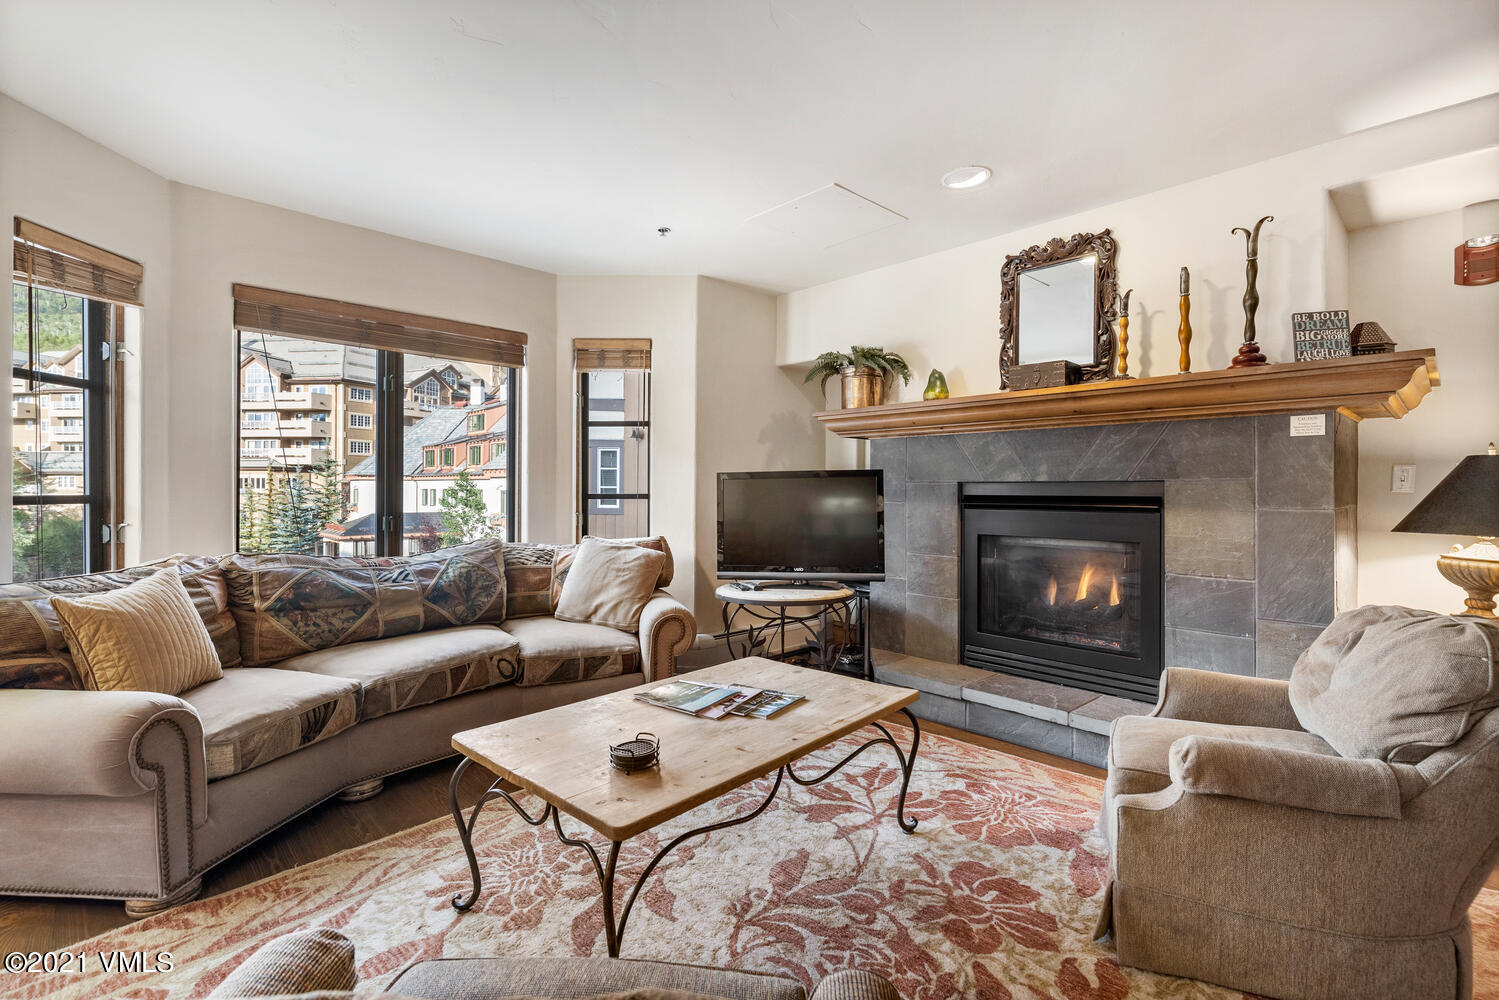 Amazing location in the heart of the Beaver Creek Village just an elevator ride away from the shops, dining, and Centennial ski lift! This 1 bedroom plus den is the perfect resort residence with fantastic rental potential. Underground heated garage parking and storage.